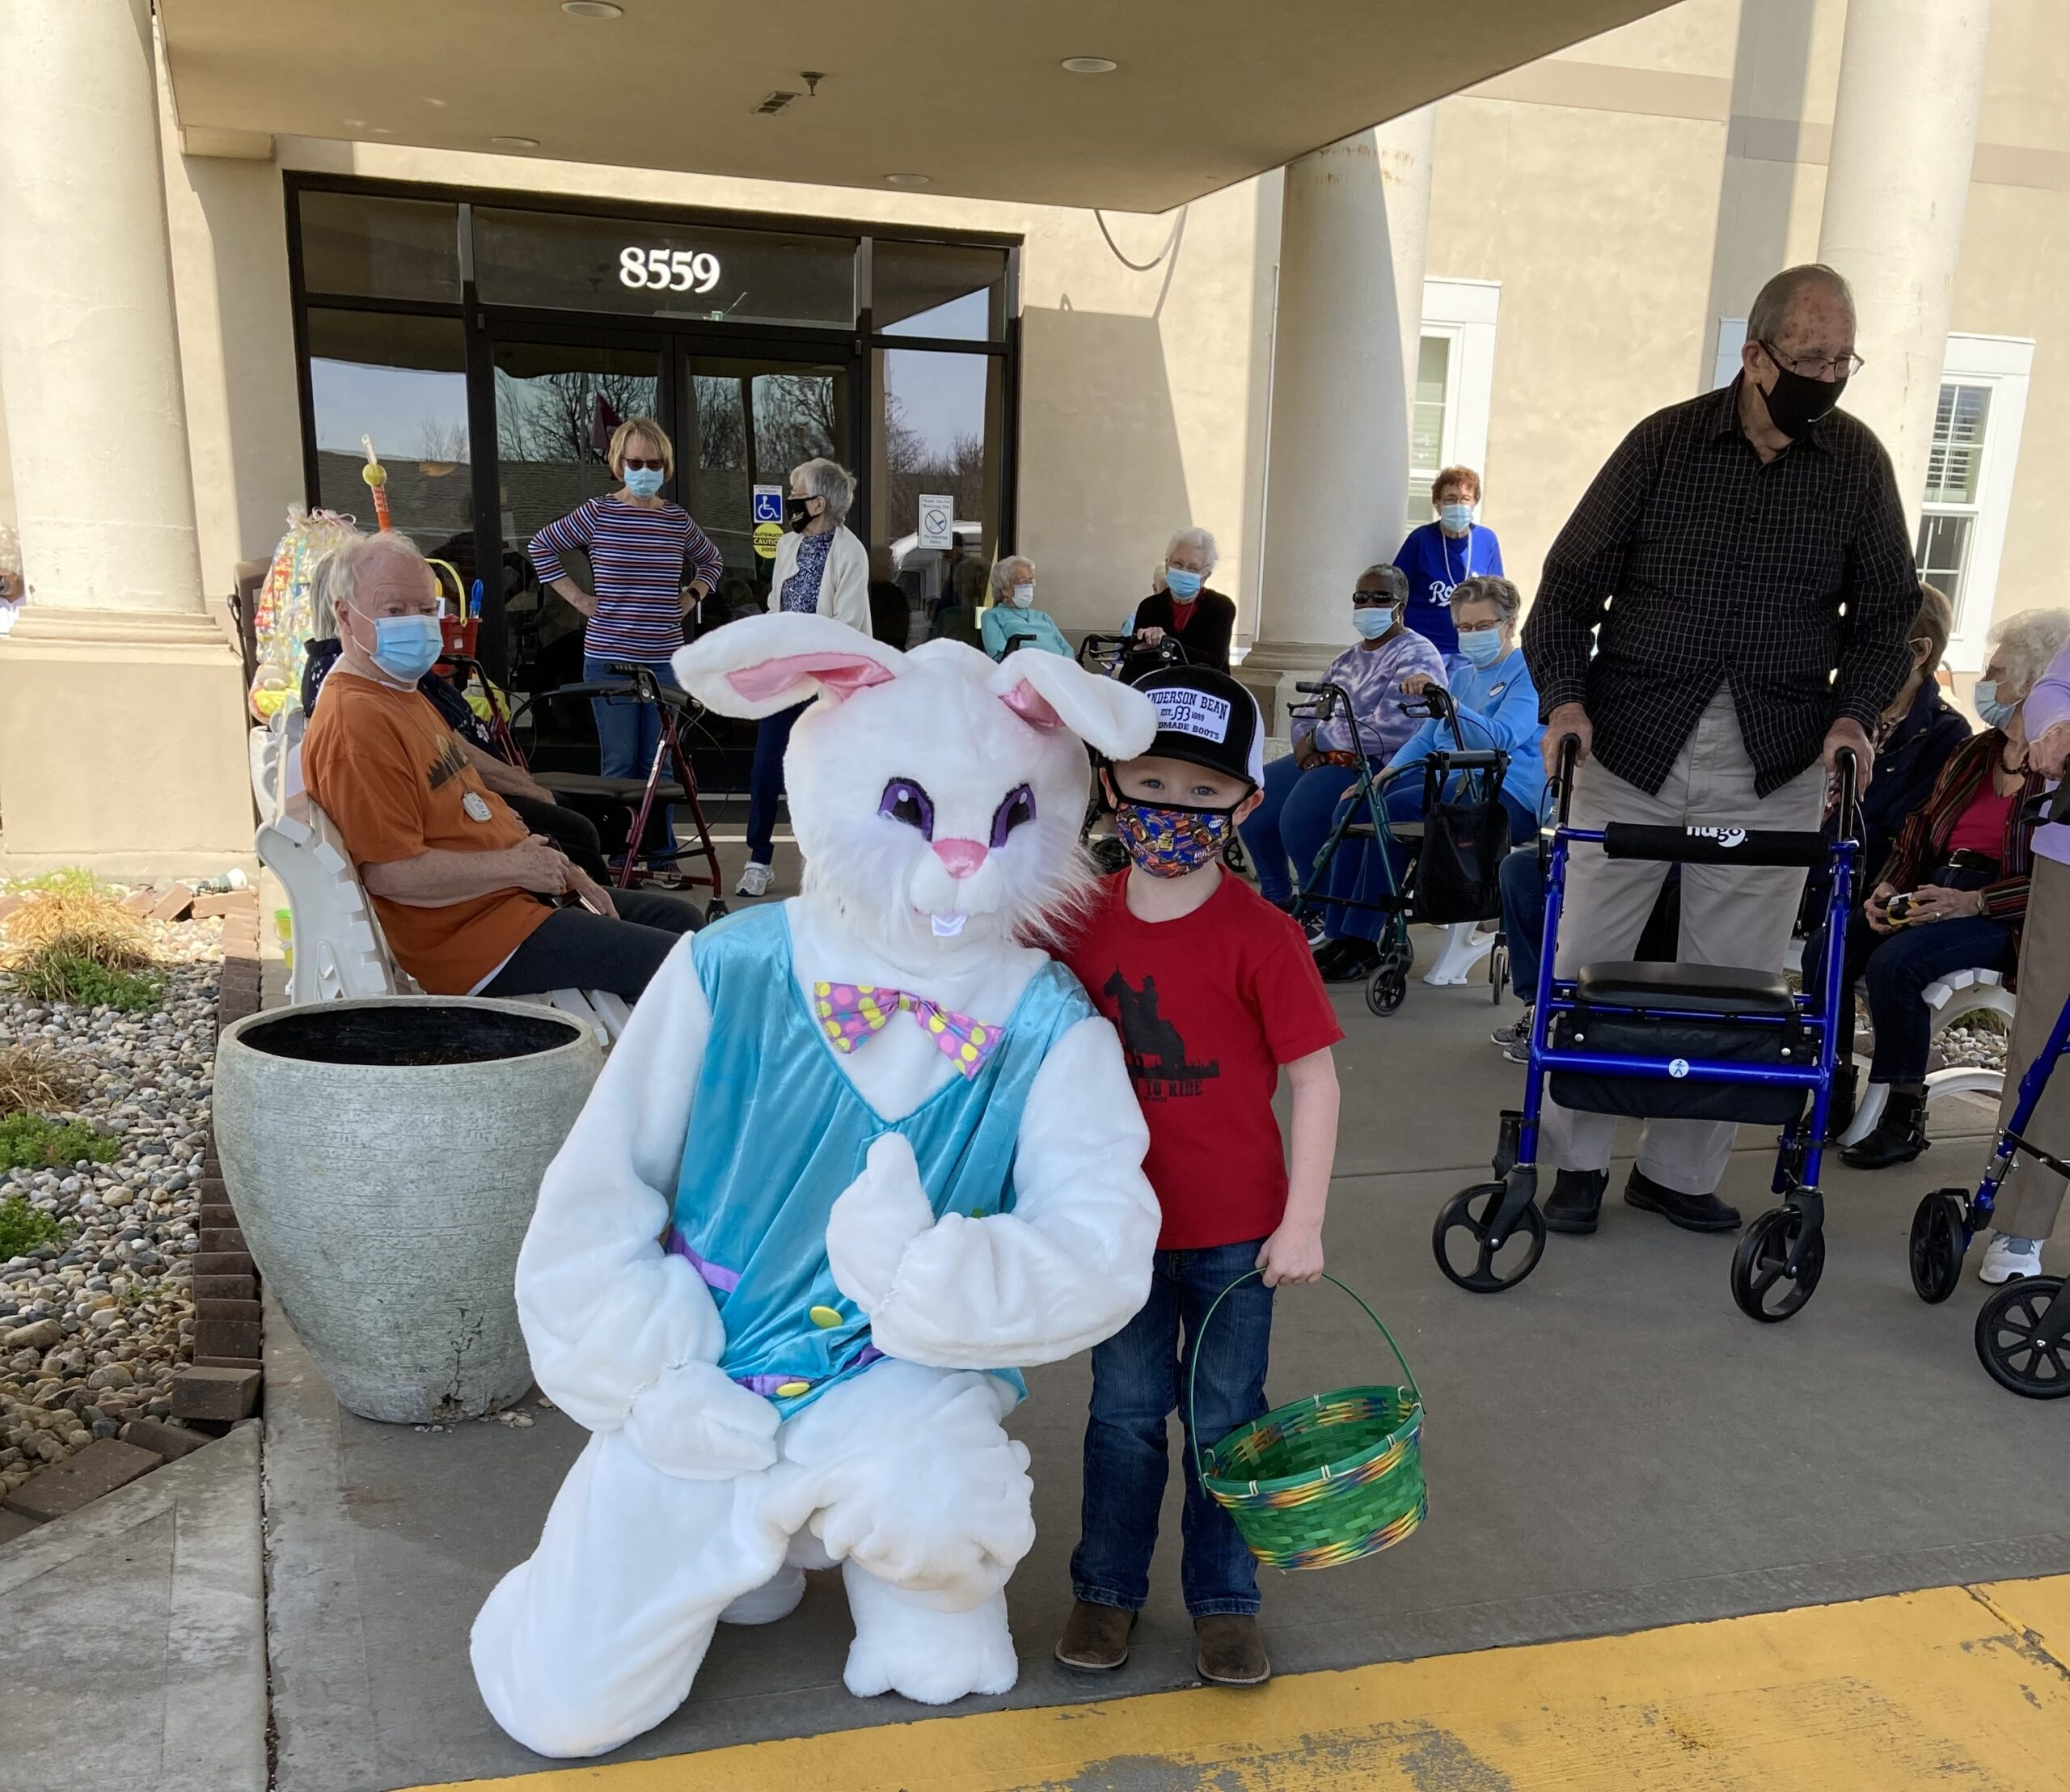 Joseph thought the Easter bunny was really cool!